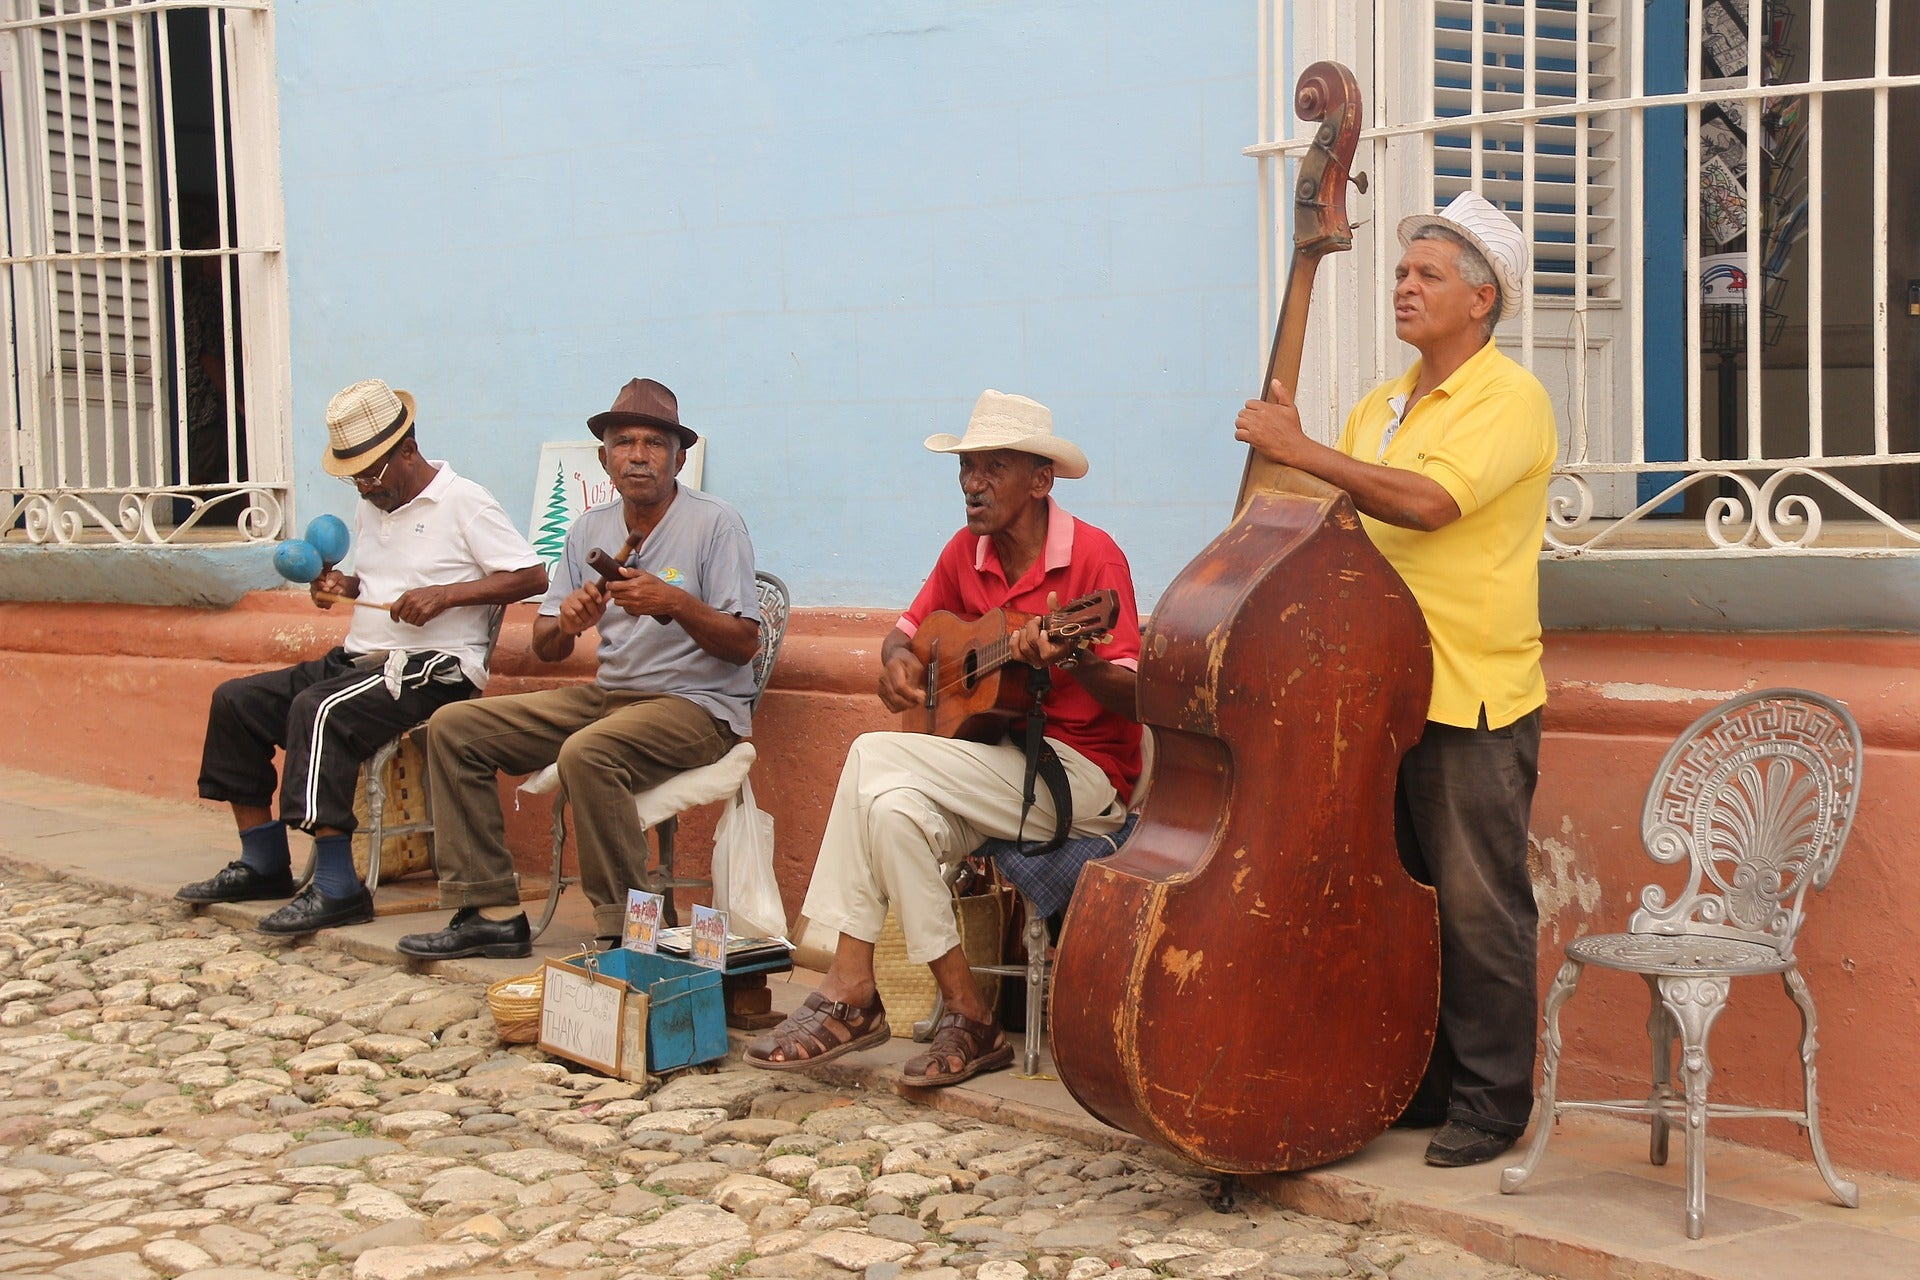 A salsa band on the street.